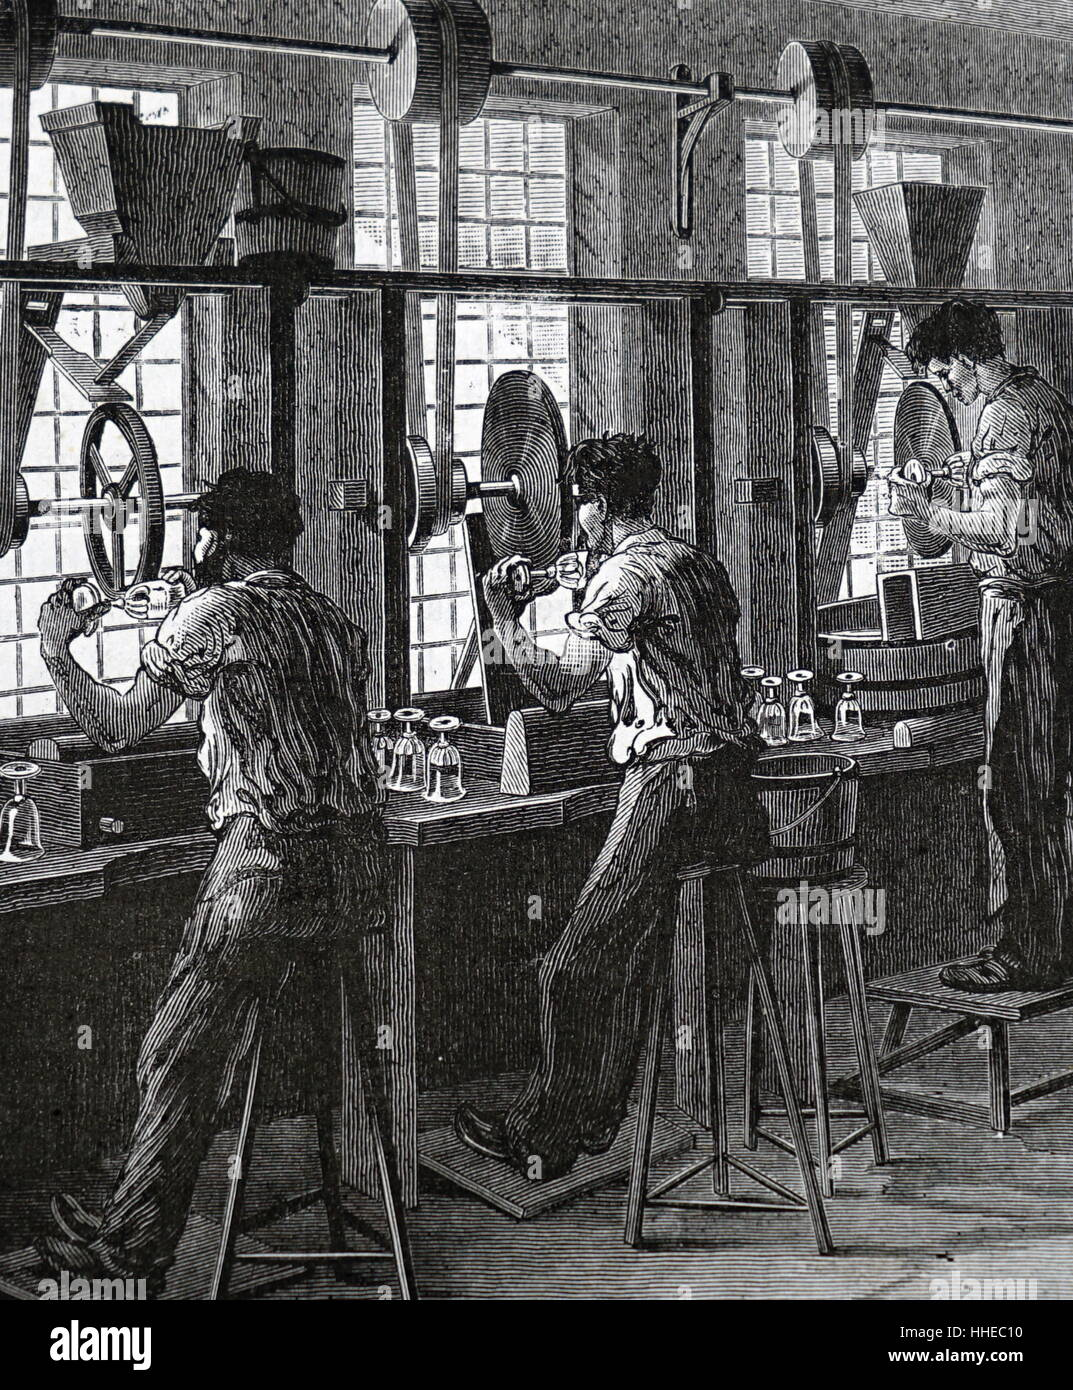 Cutting and polishing flint glass (crystal) table wares. From Louis Figuier Les Grandes Inventions, Paris, 1876. Stock Photo